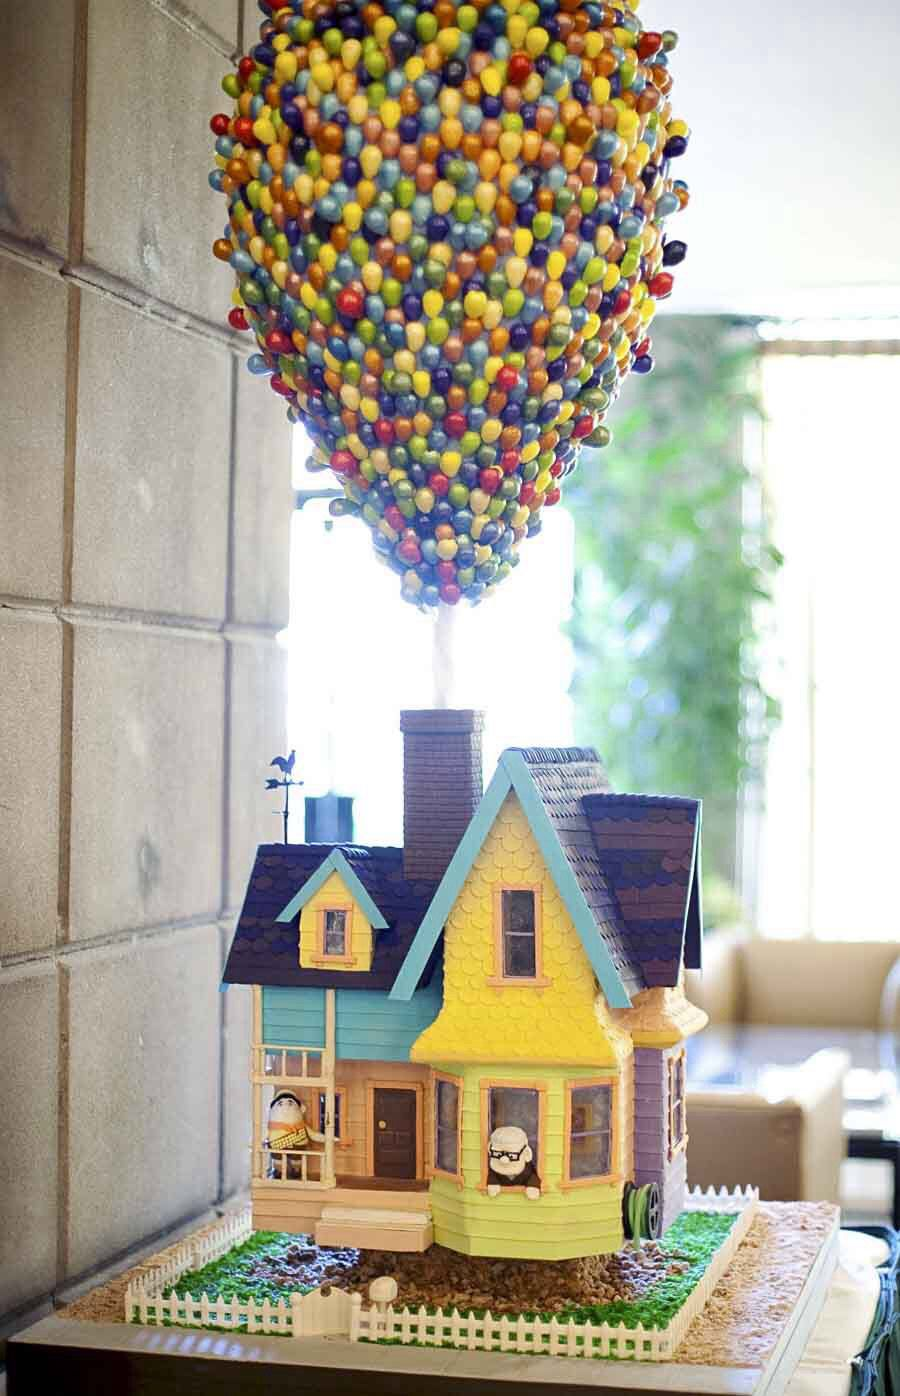 Disney's Up kids birthday cake! I love the movie UP! And This cake is absolutely Amazing!! So detailed and incredible!!